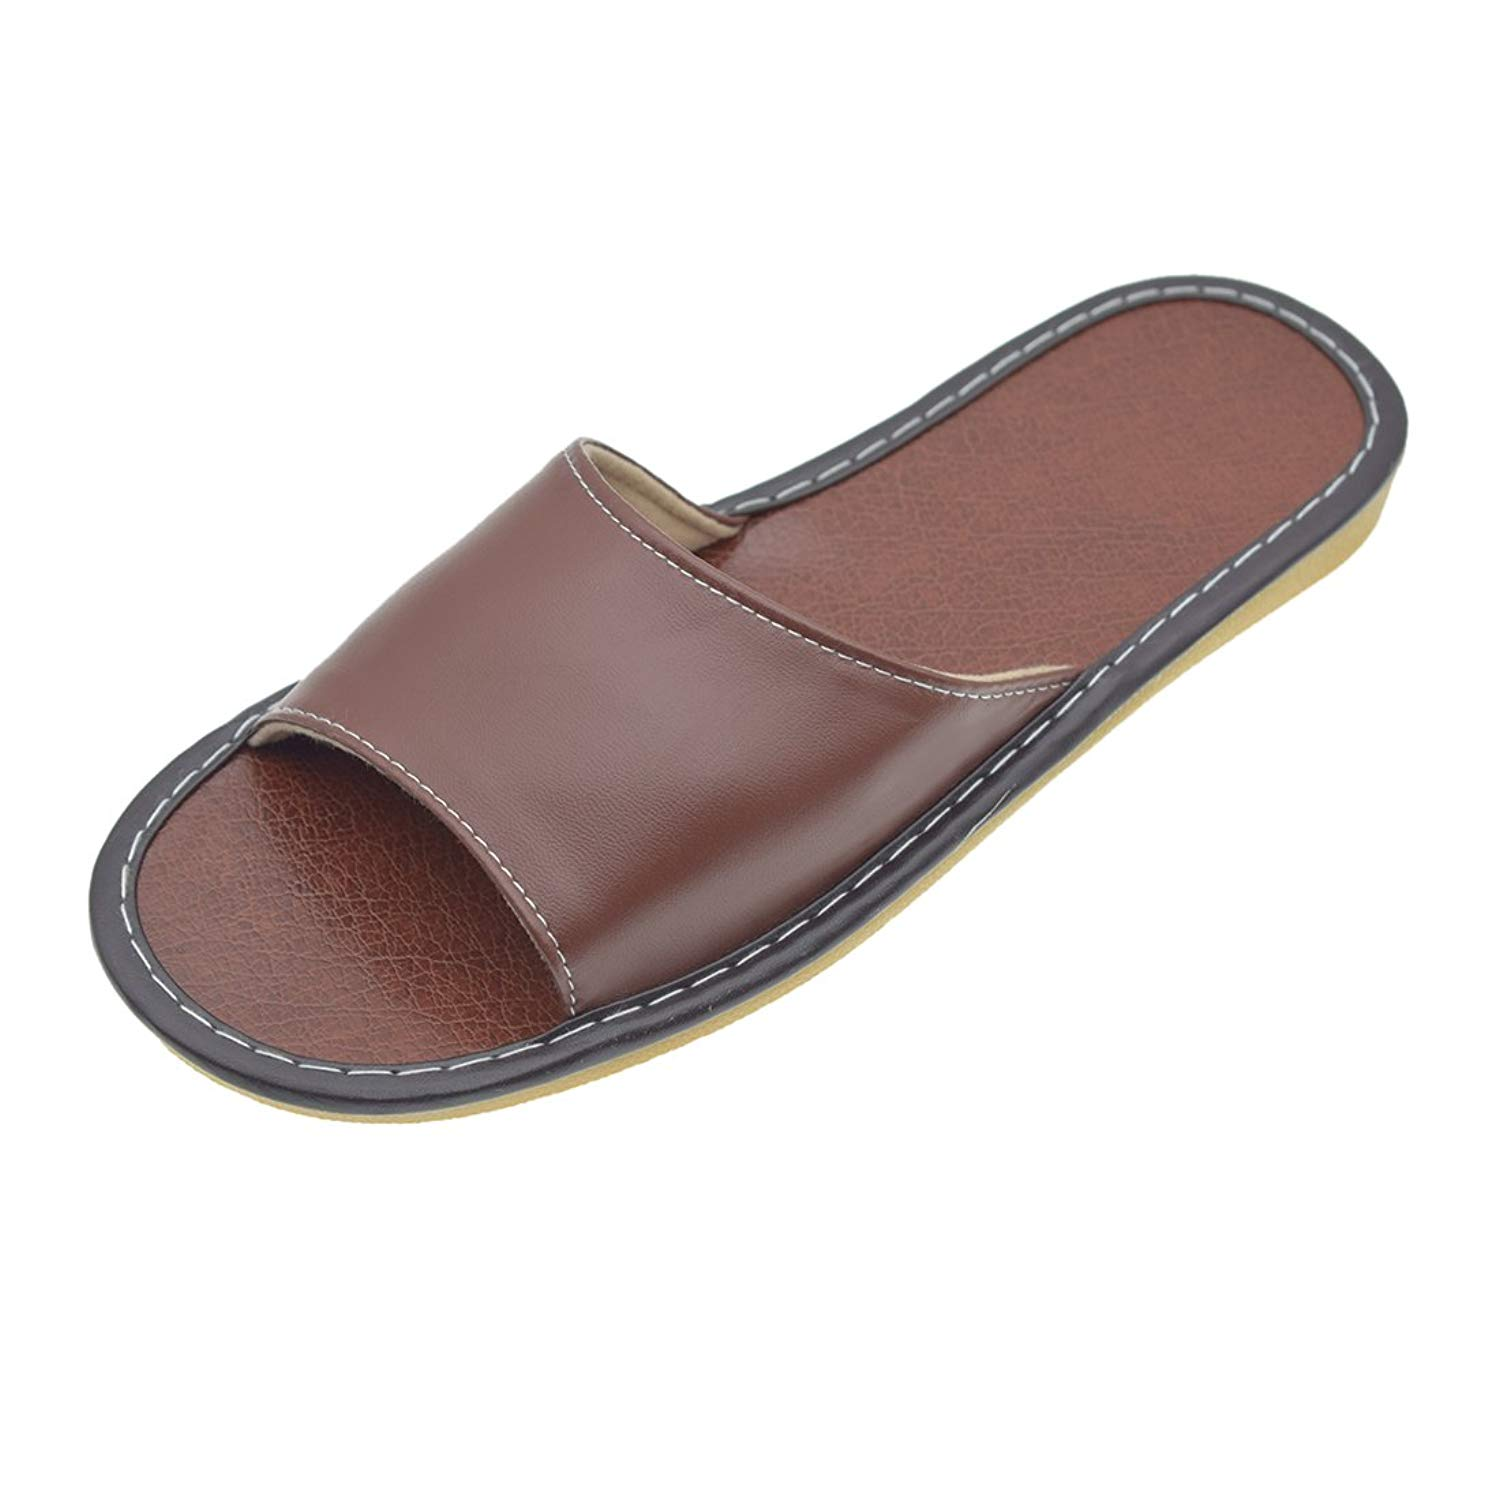 f4e150af7 Get Quotations · Maylian Mens Slippers-Mens House Shoes PU Leather Open Toe  Flats Slippers